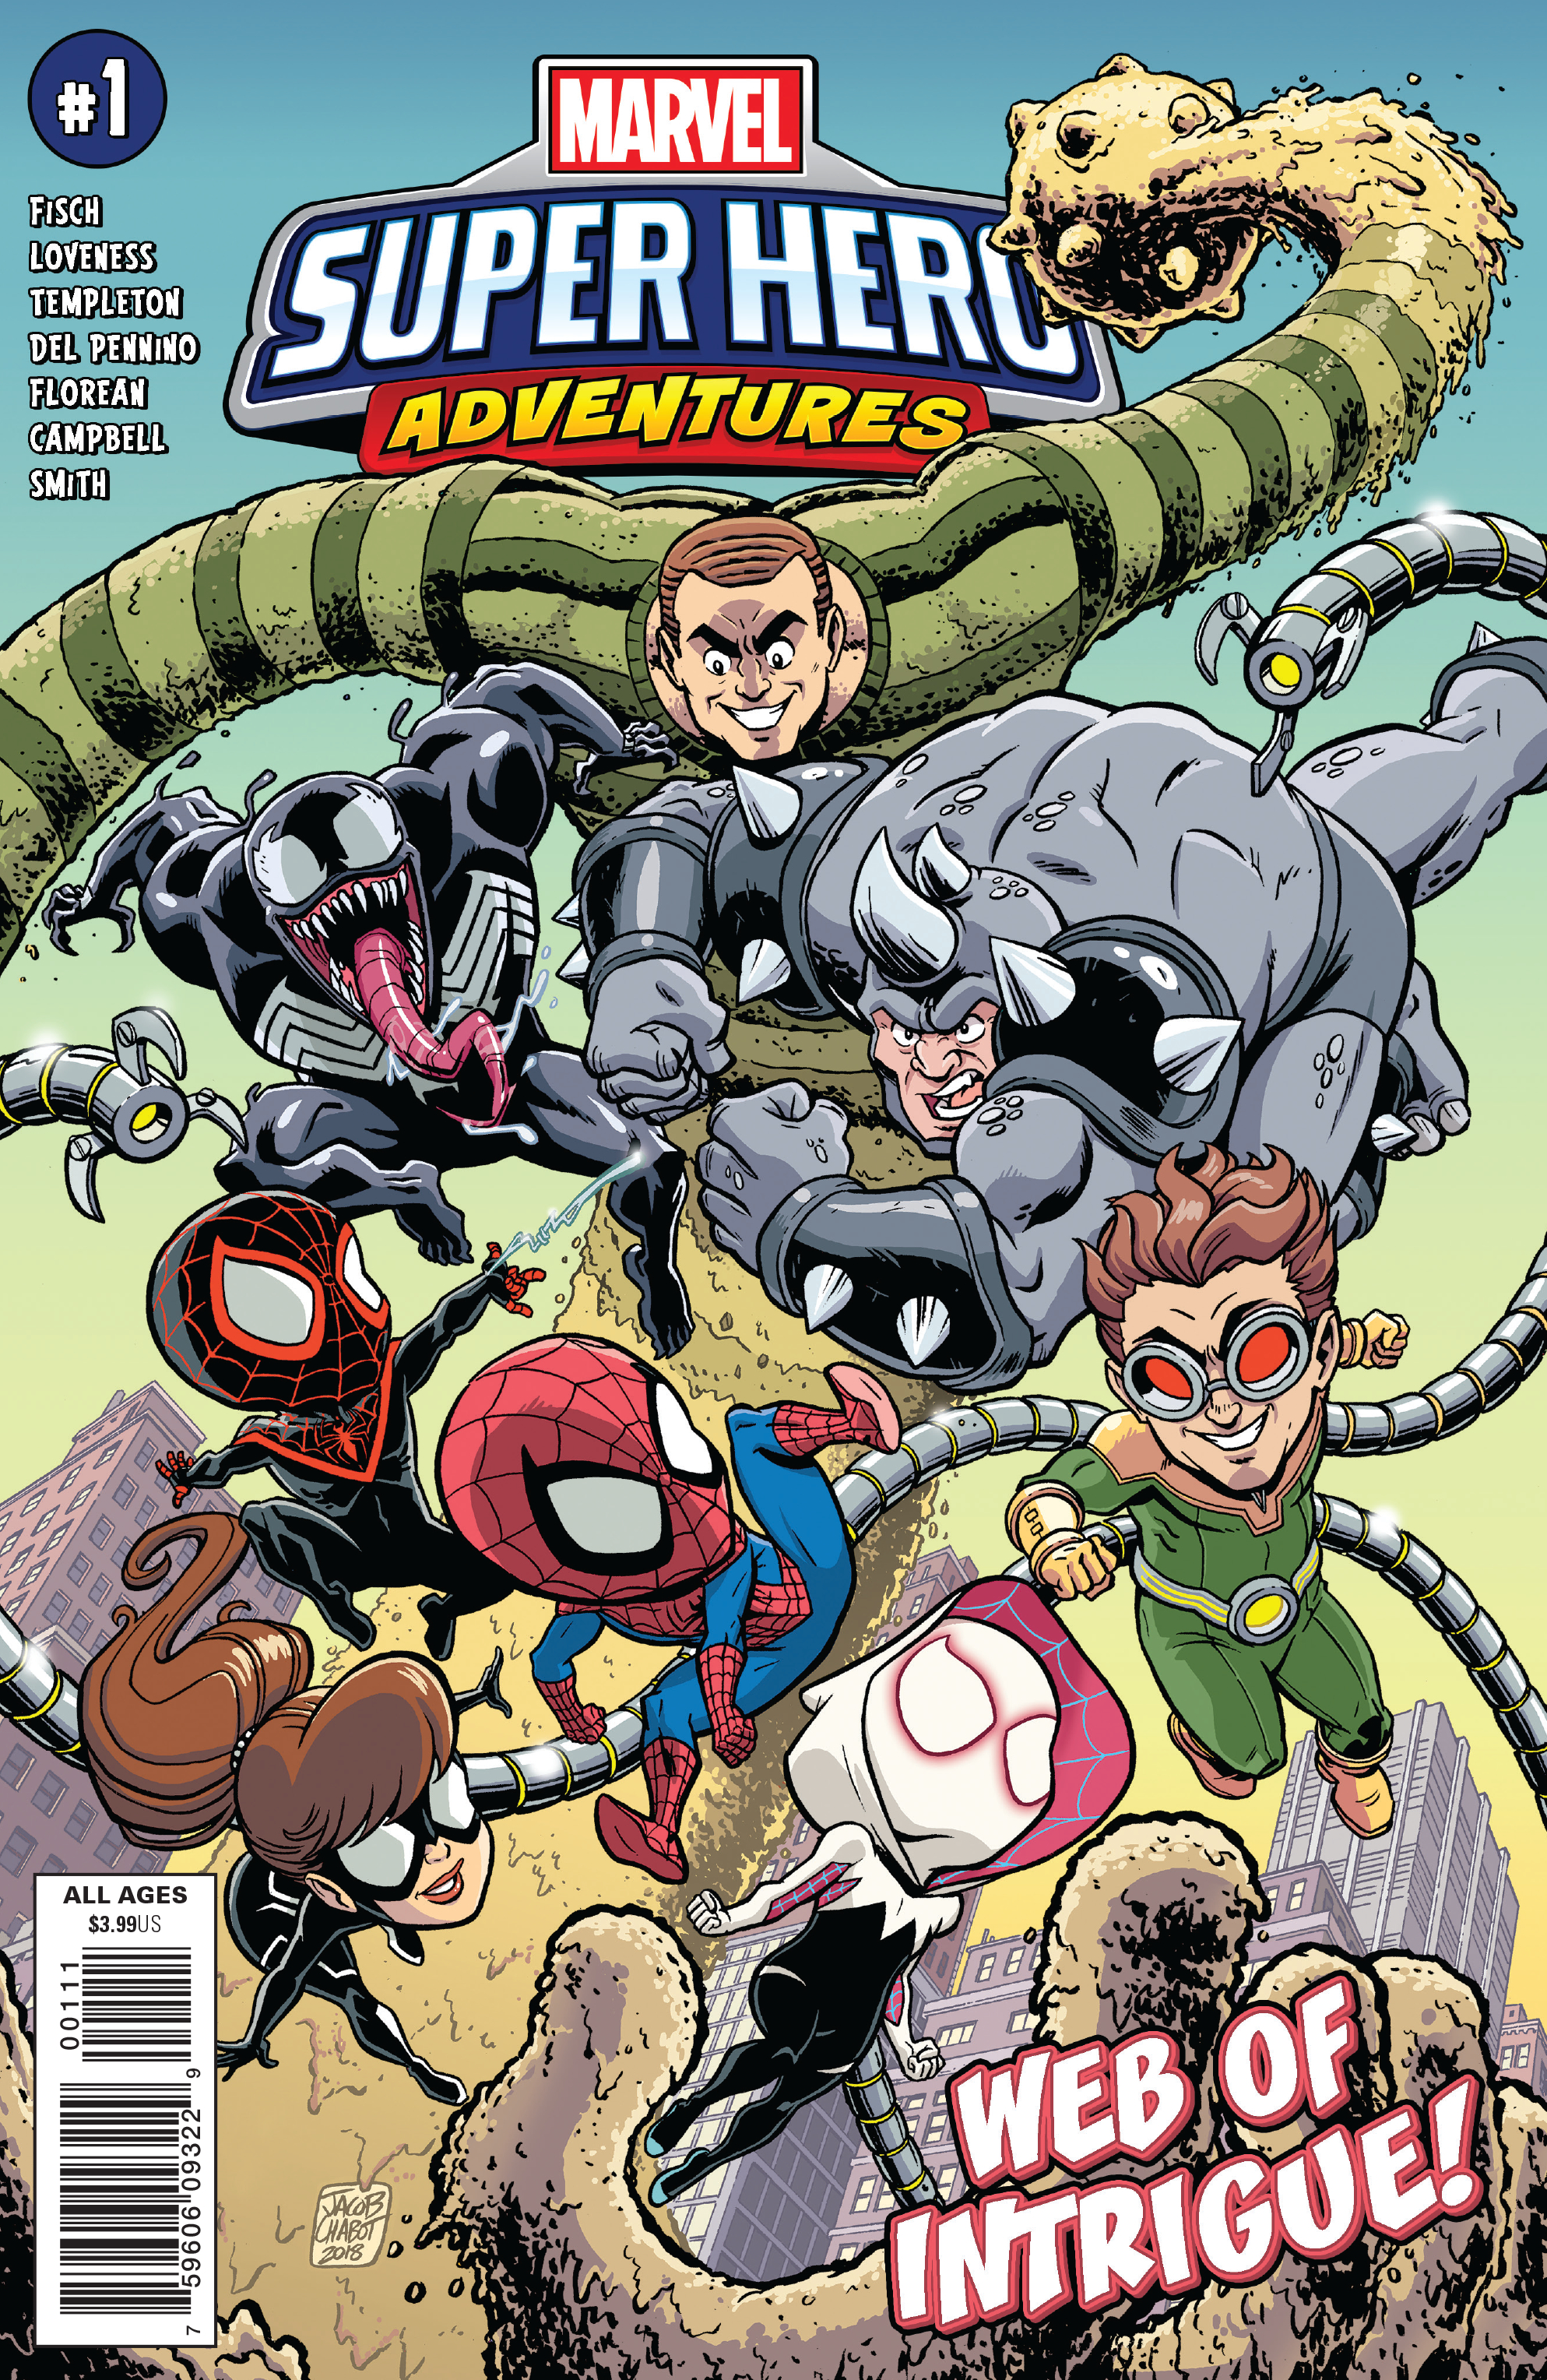 MSH ADVENTURES SPIDER-MAN WEB OF INTRIGUE #1